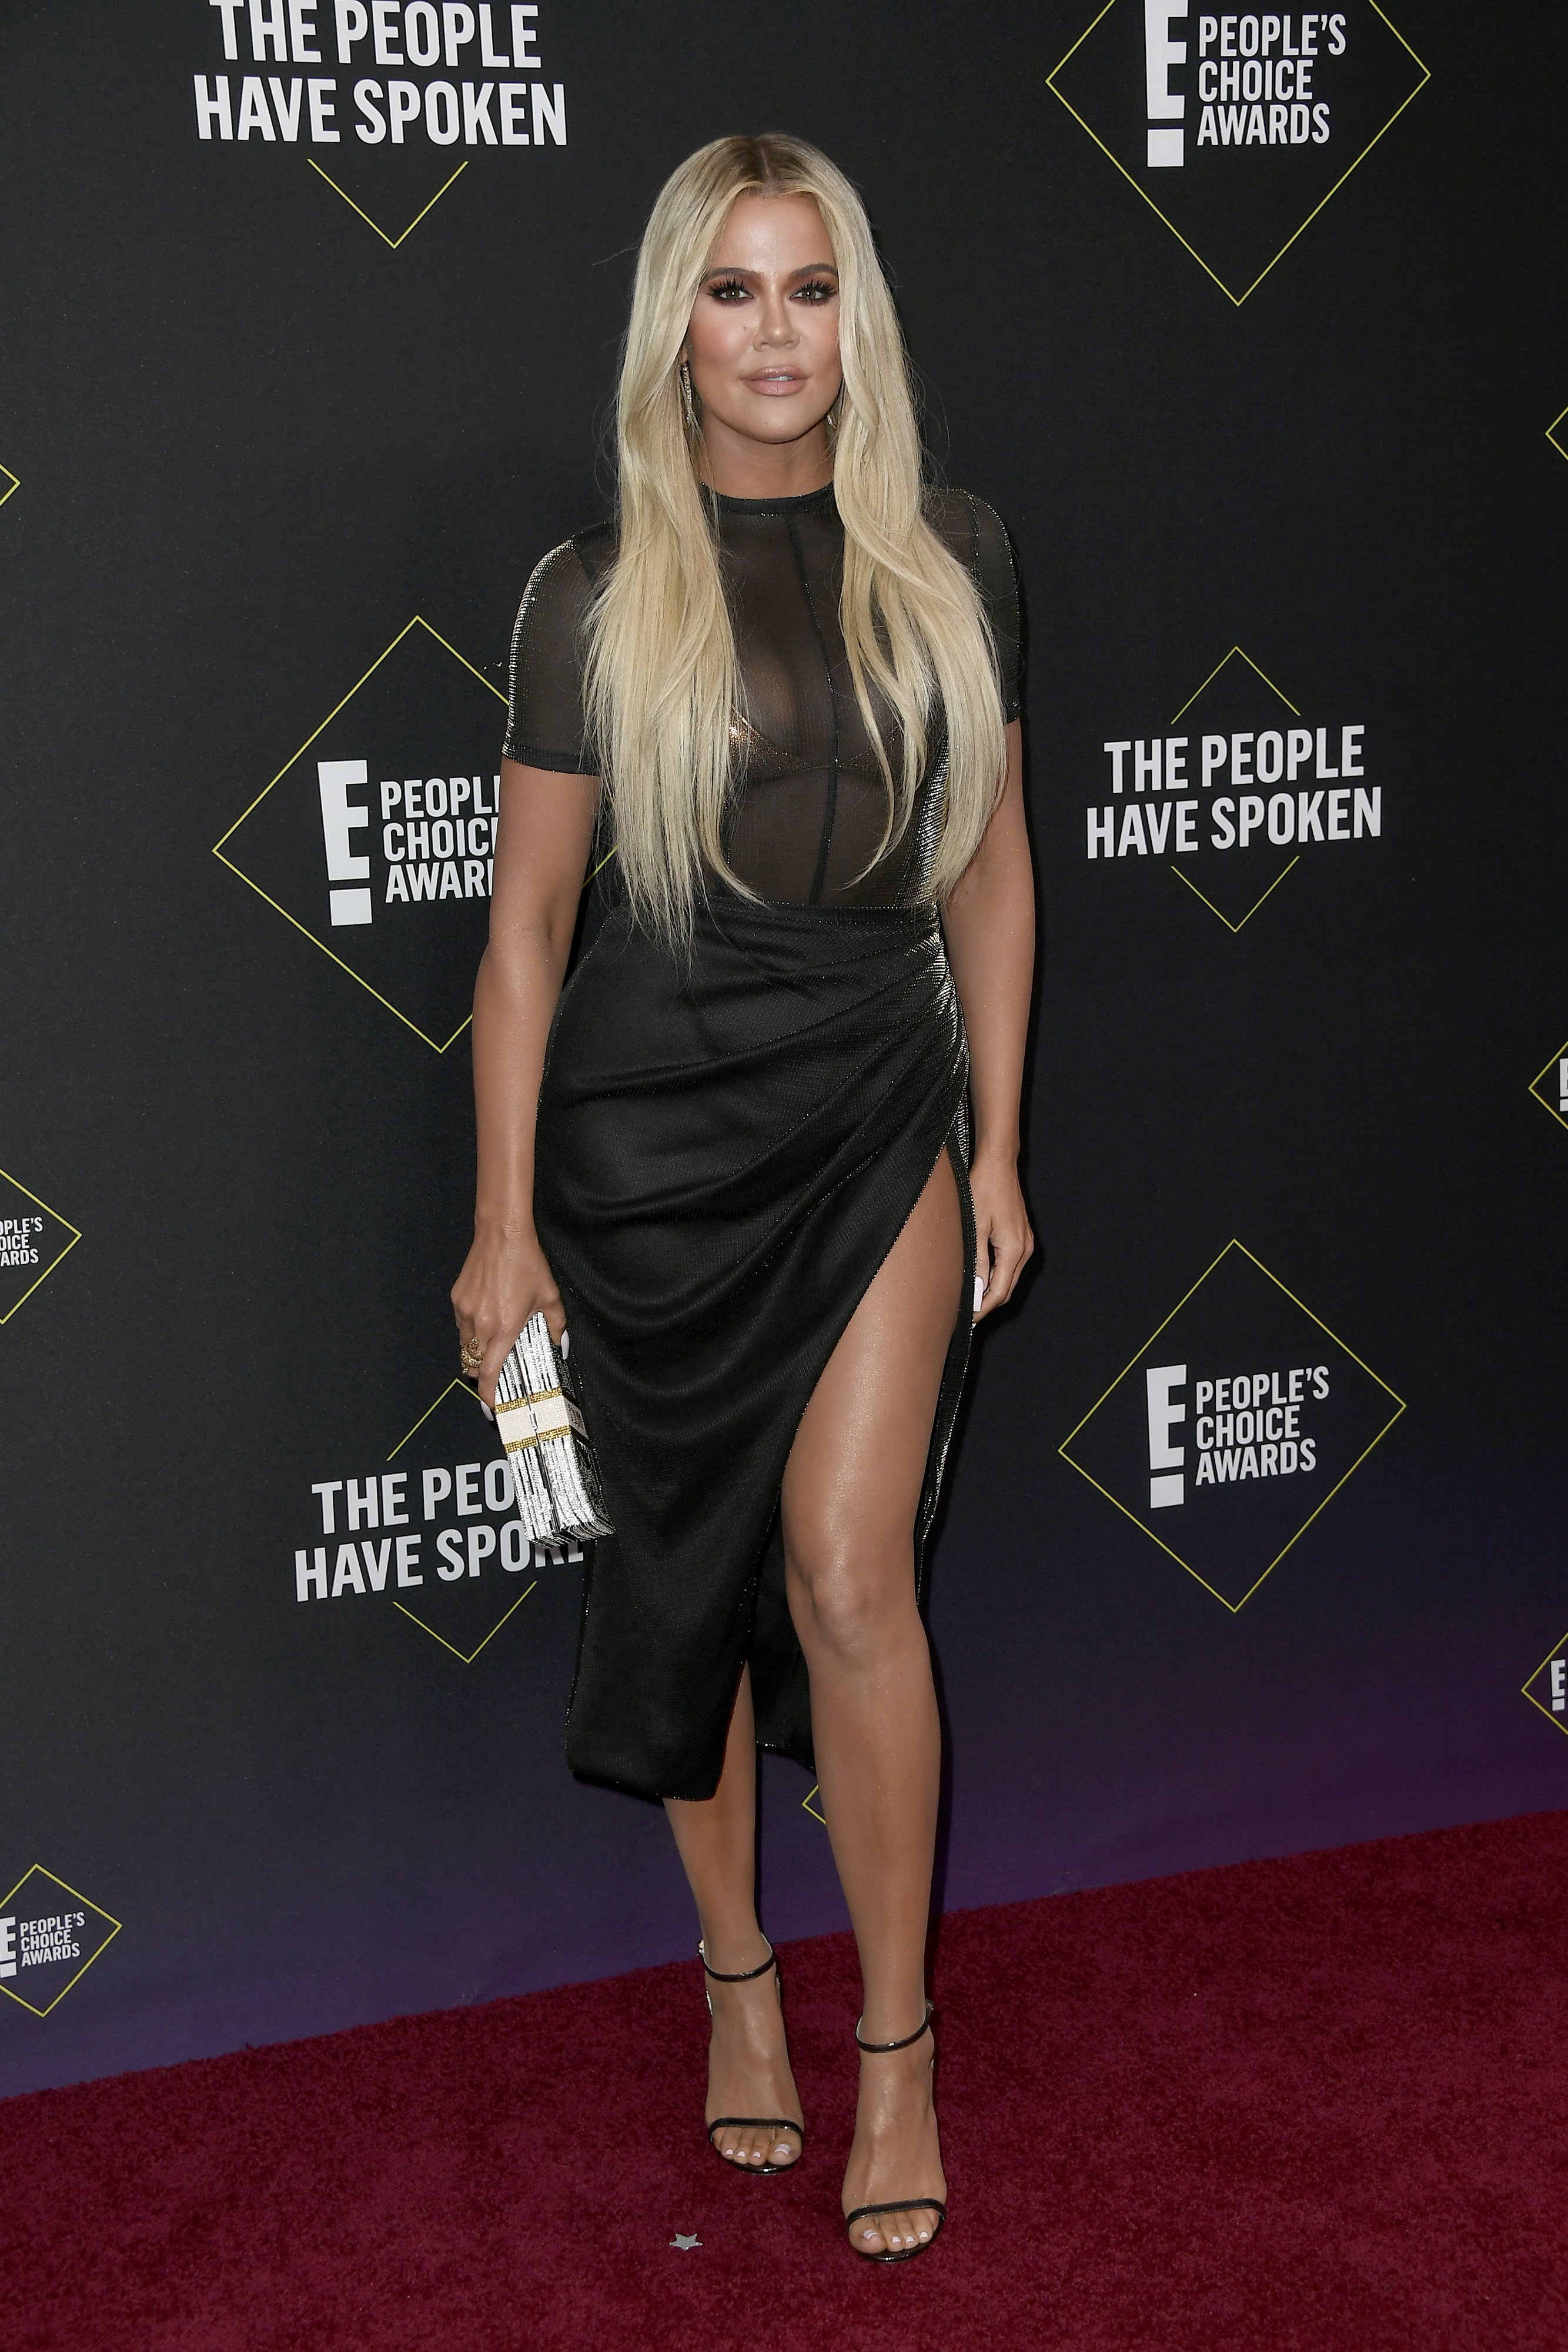 Khloé Kardashian at E! People's Choice Awards in 2019 in California | Source: Getty Images